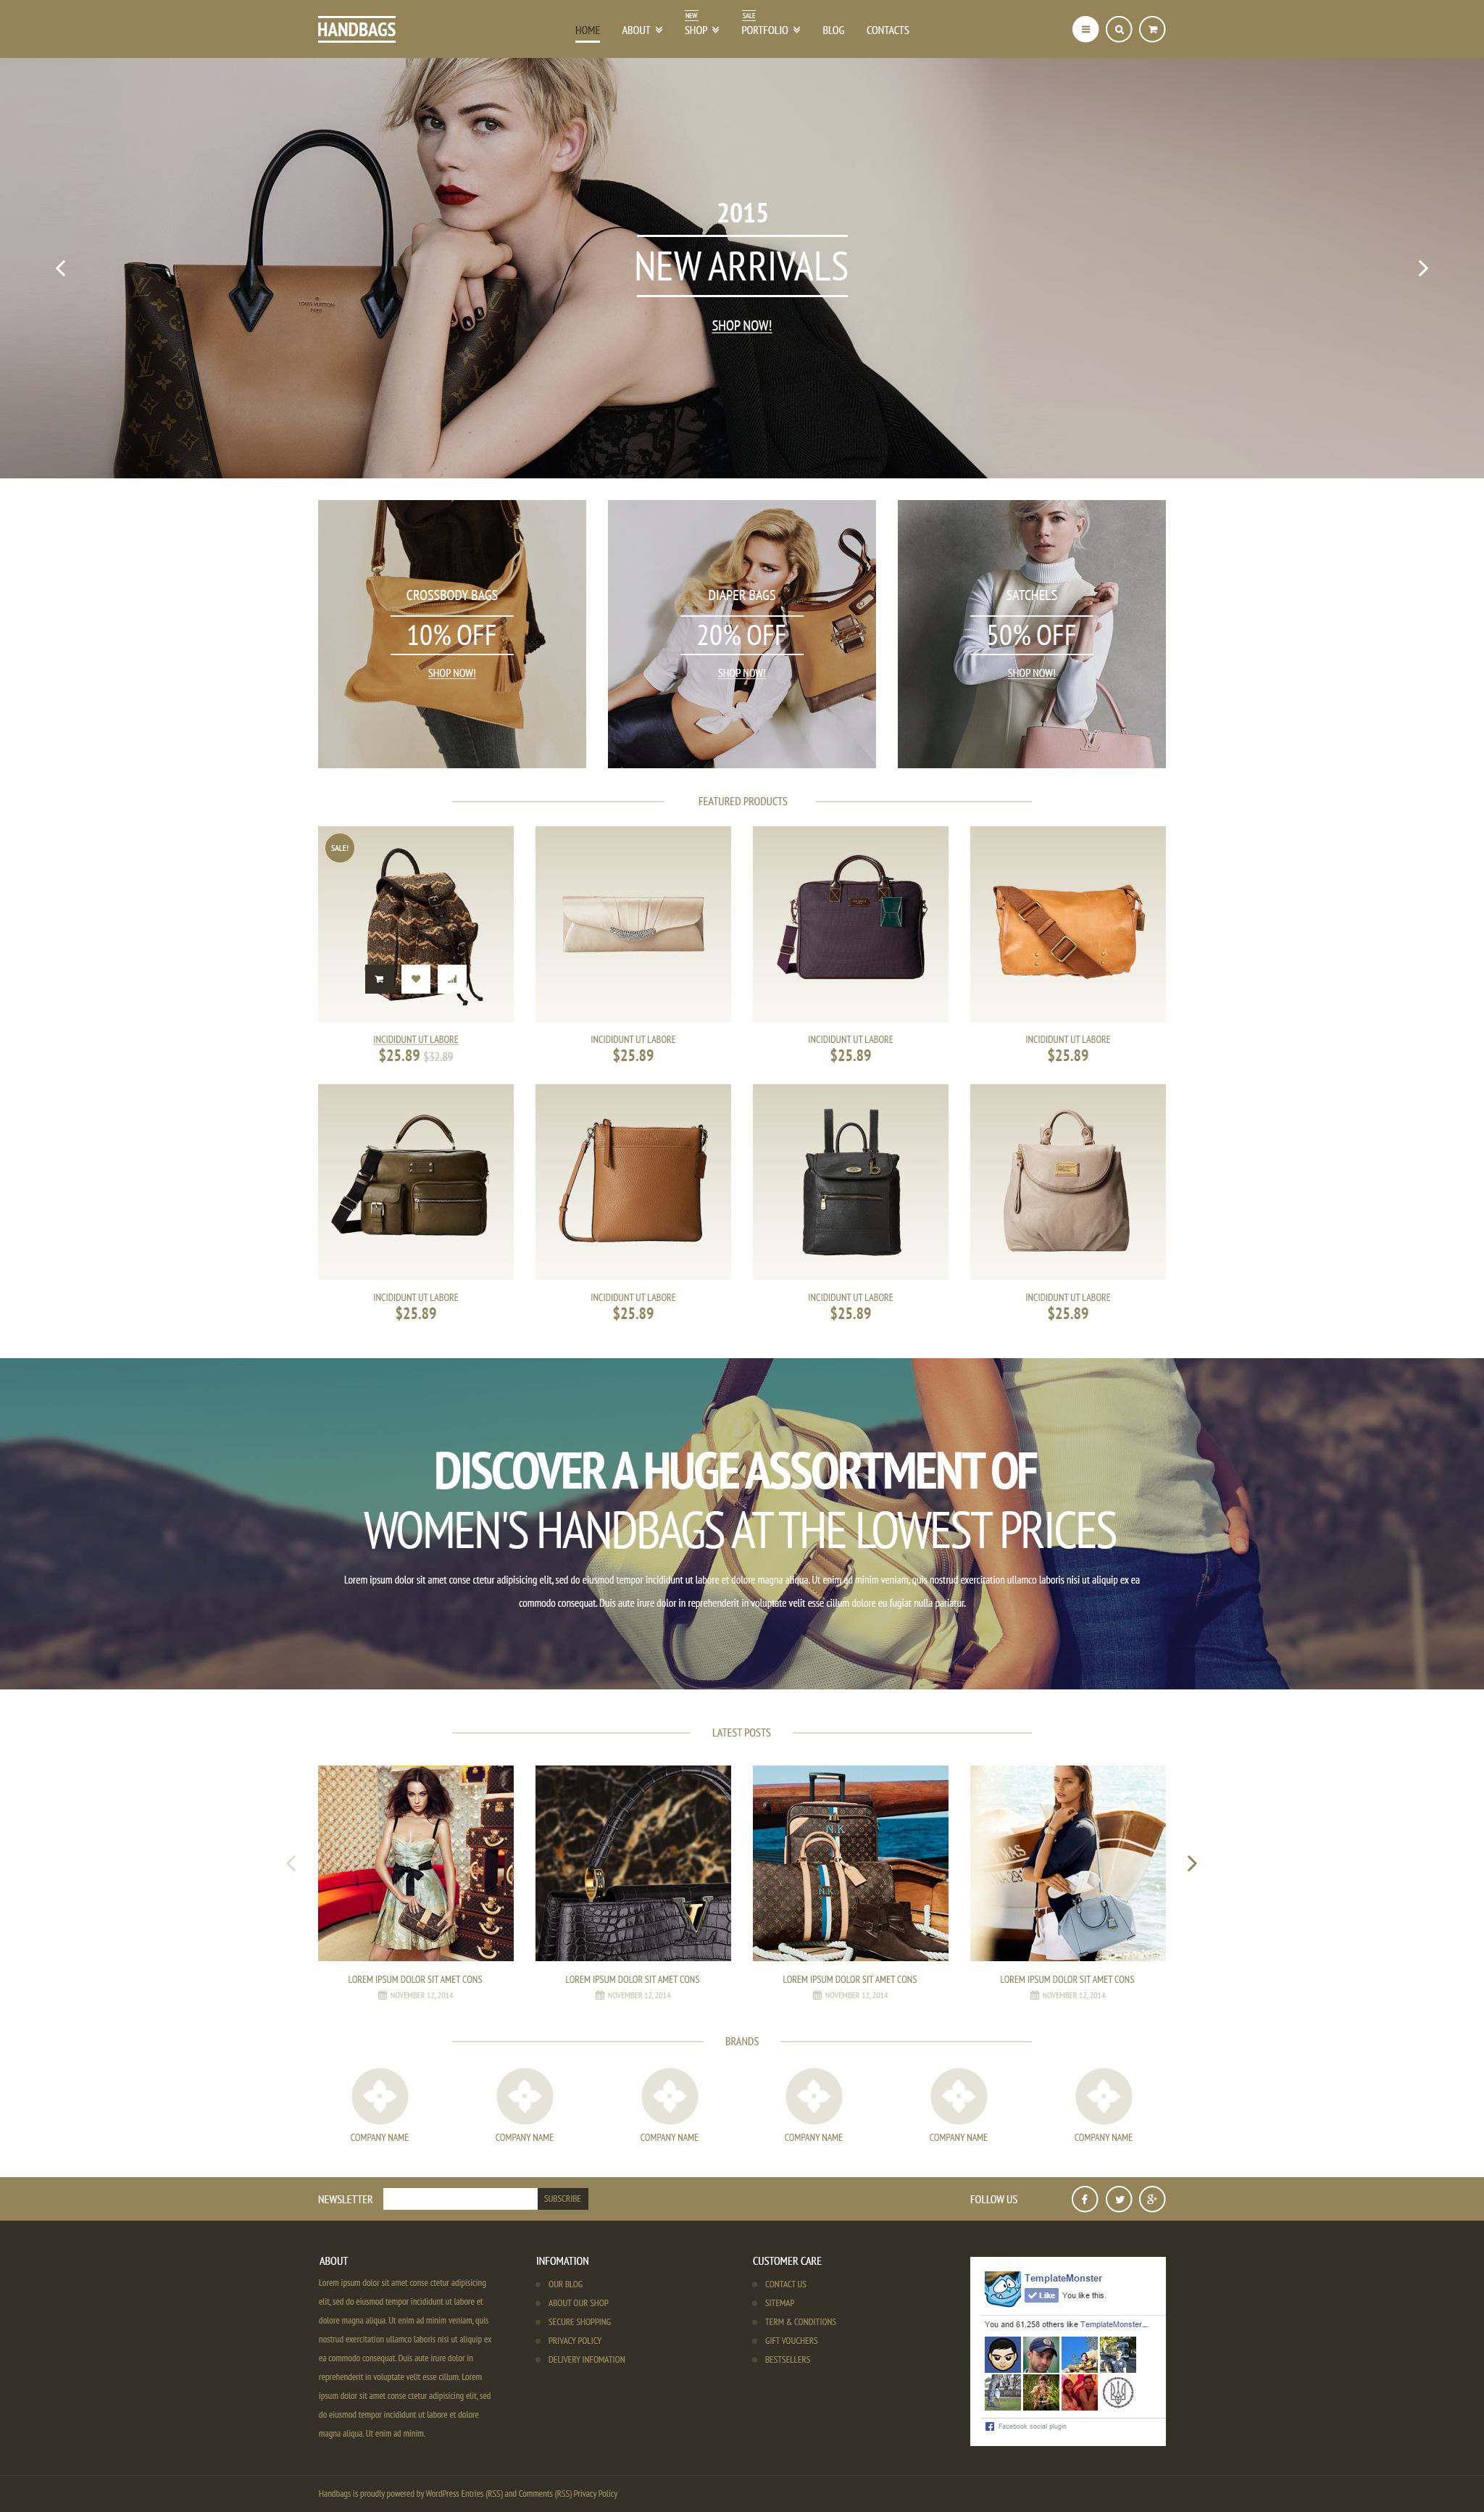 The Handbags Boutique WooCommerce Design 53170, one of the best WooCommerce themes of its kind (wedding, most popular), also known as handbags boutique WooCommerce template, reticule store WooCommerce template, bag WooCommerce template, bags store WooCommerce template, fancy WooCommerce template, bag WooCommerce template, leather WooCommerce template, fashion and related with handbags boutique, reticule store, bag, bags store, fancy, bag, leather, fashion, etc.